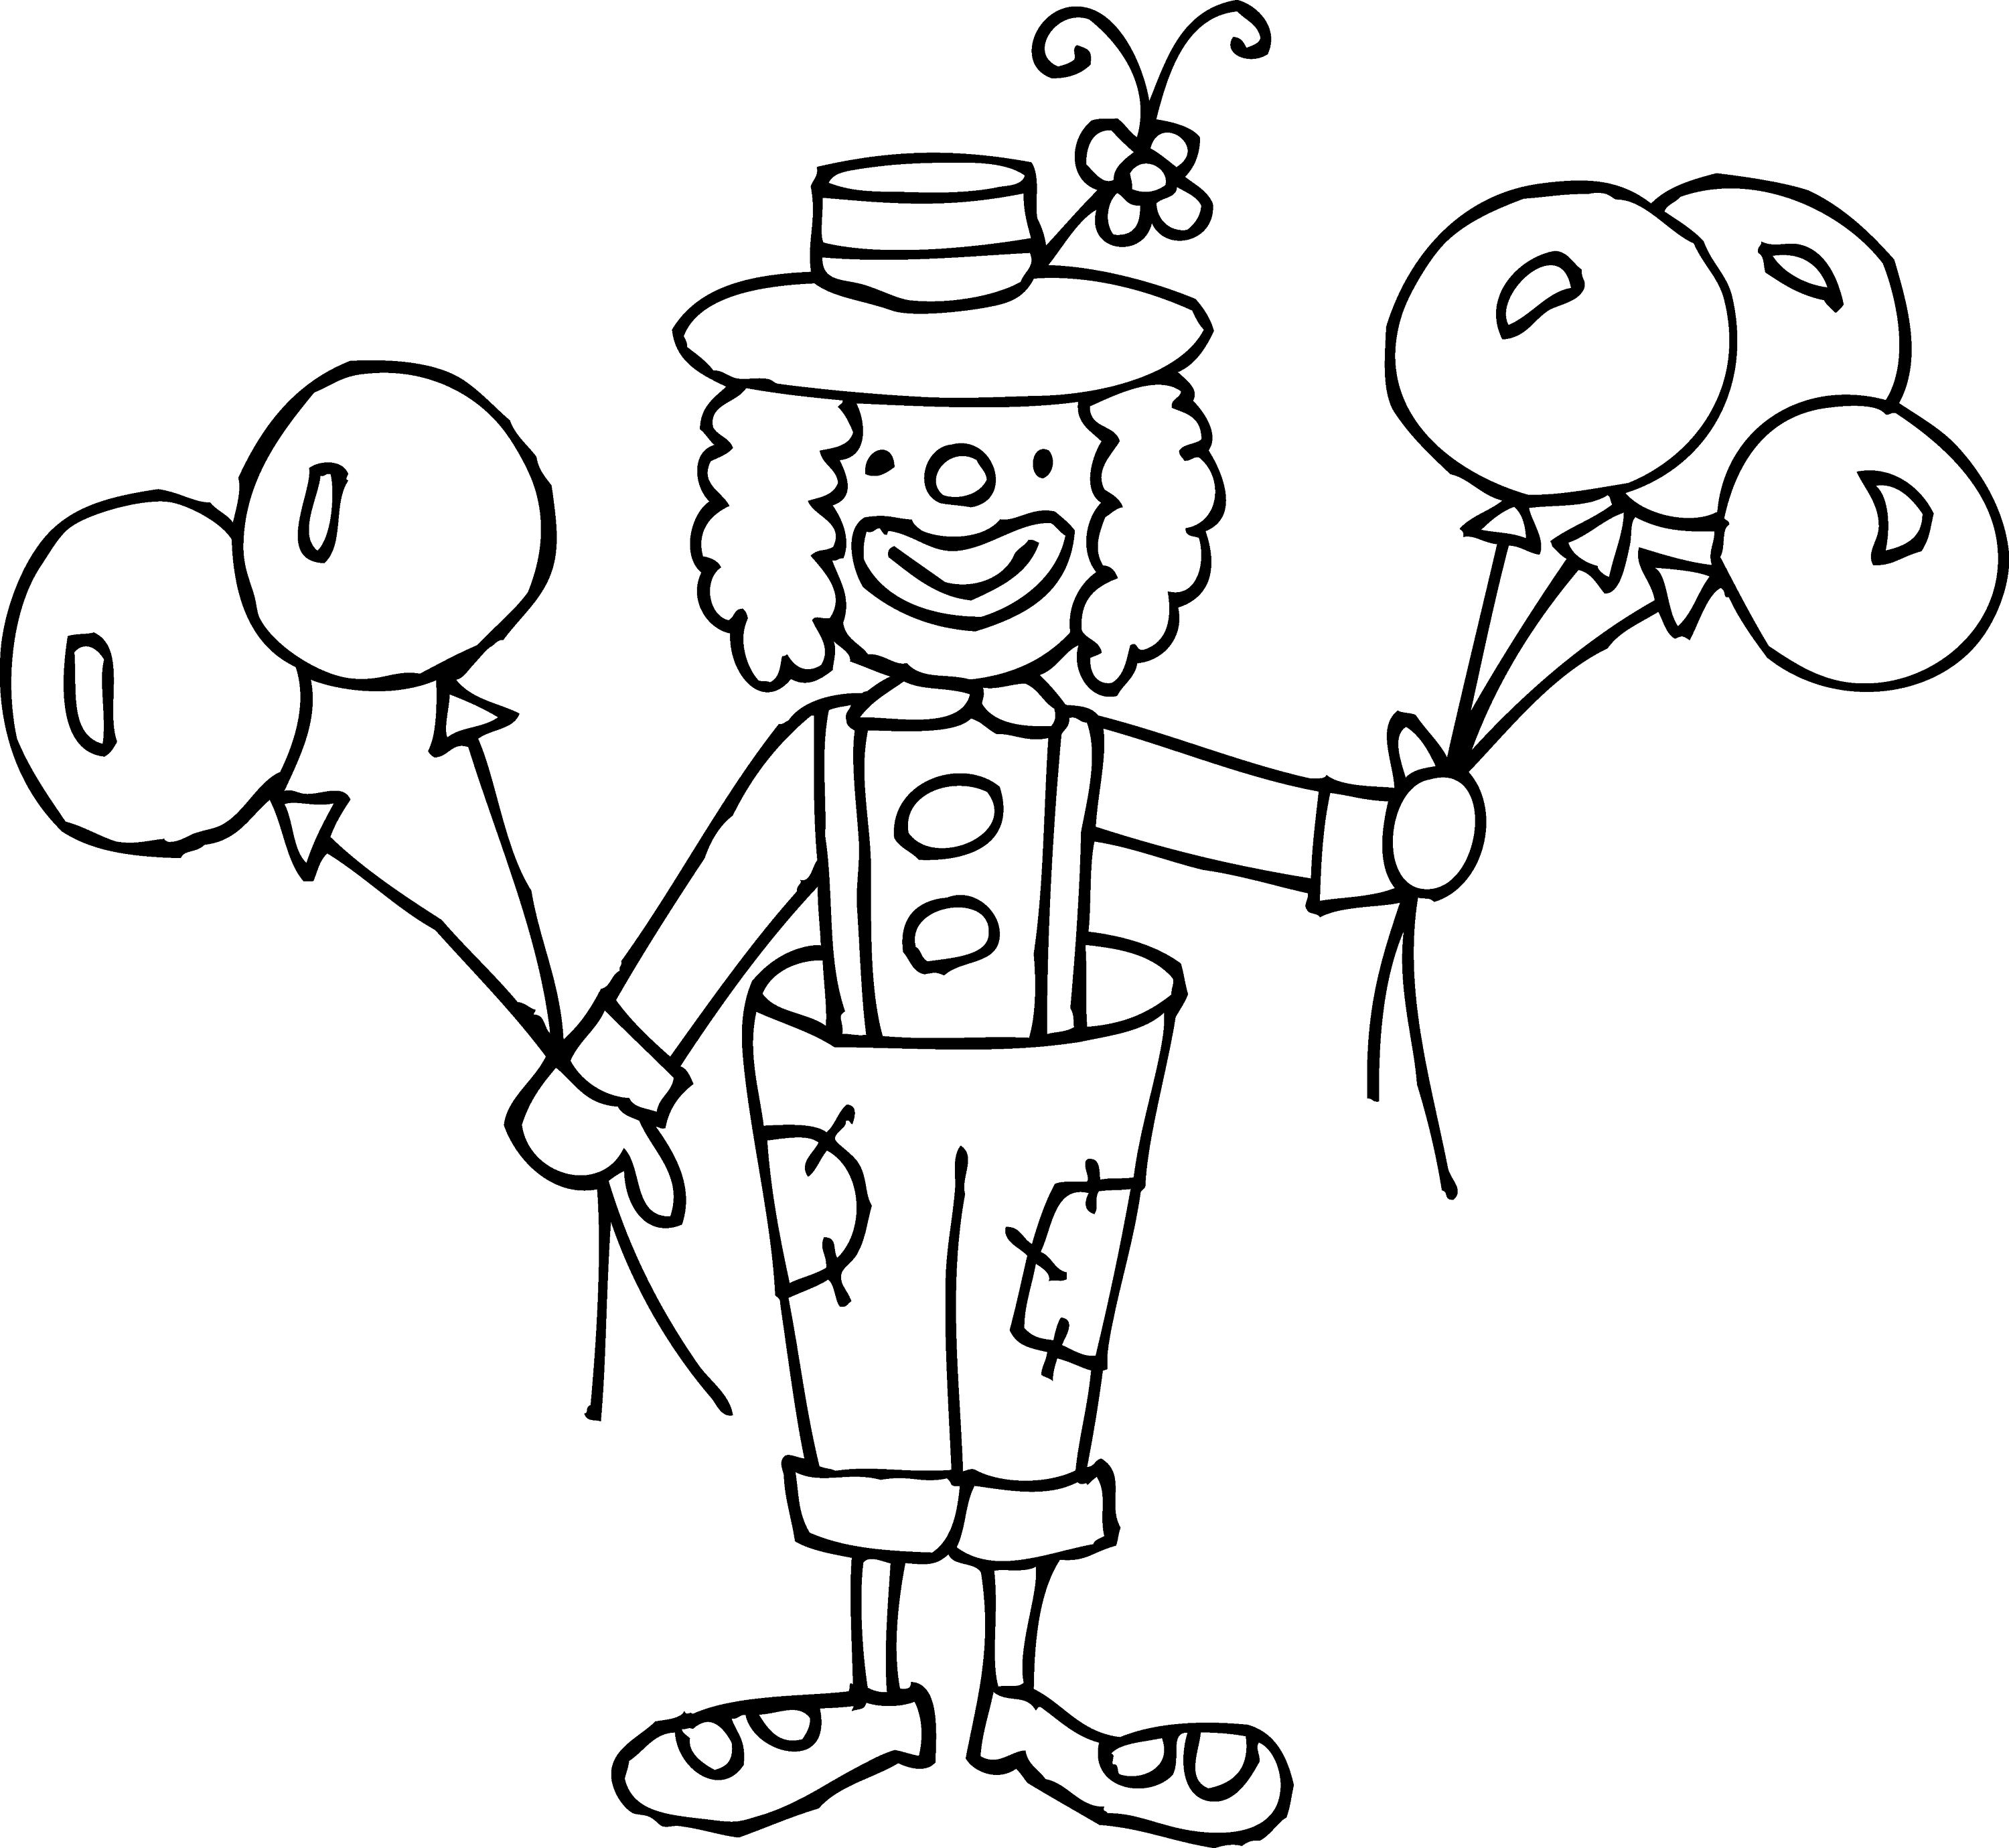 free clown coloring pages top 10 free printable funny clown coloring pages online coloring clown pages free